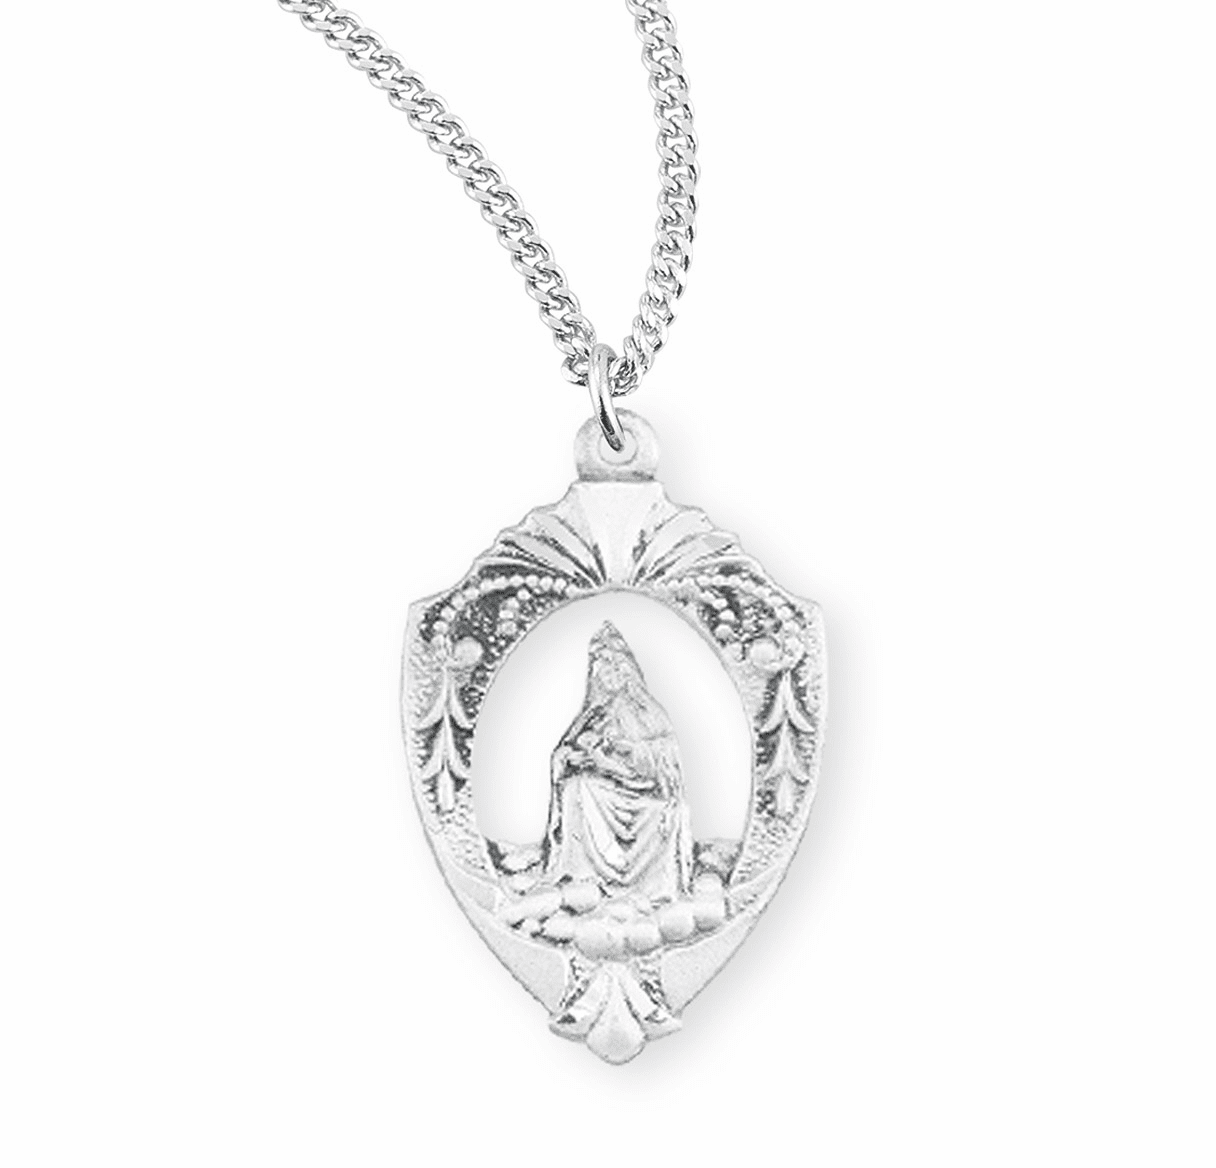 HMH Religious Our Lady of Laleche Spanish Sterling Silver Medal Necklace